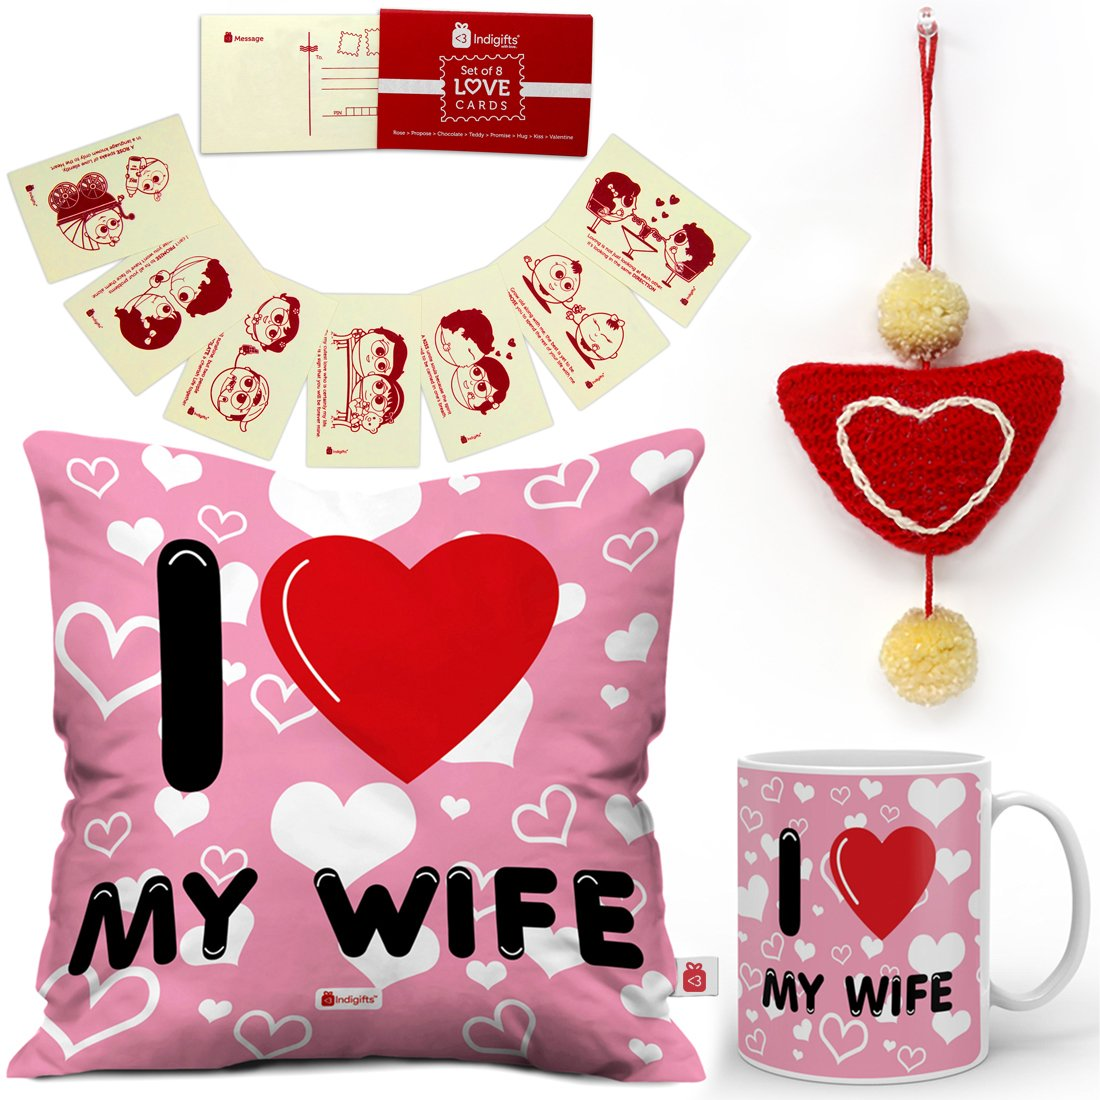 Indi ts Valentine Day Gifts I Love My WIFE Quote Seamless Heart Pattern Pink Cushion Cover 12×12 with Filler Mug 330 ml 8 Love Postcards and 1